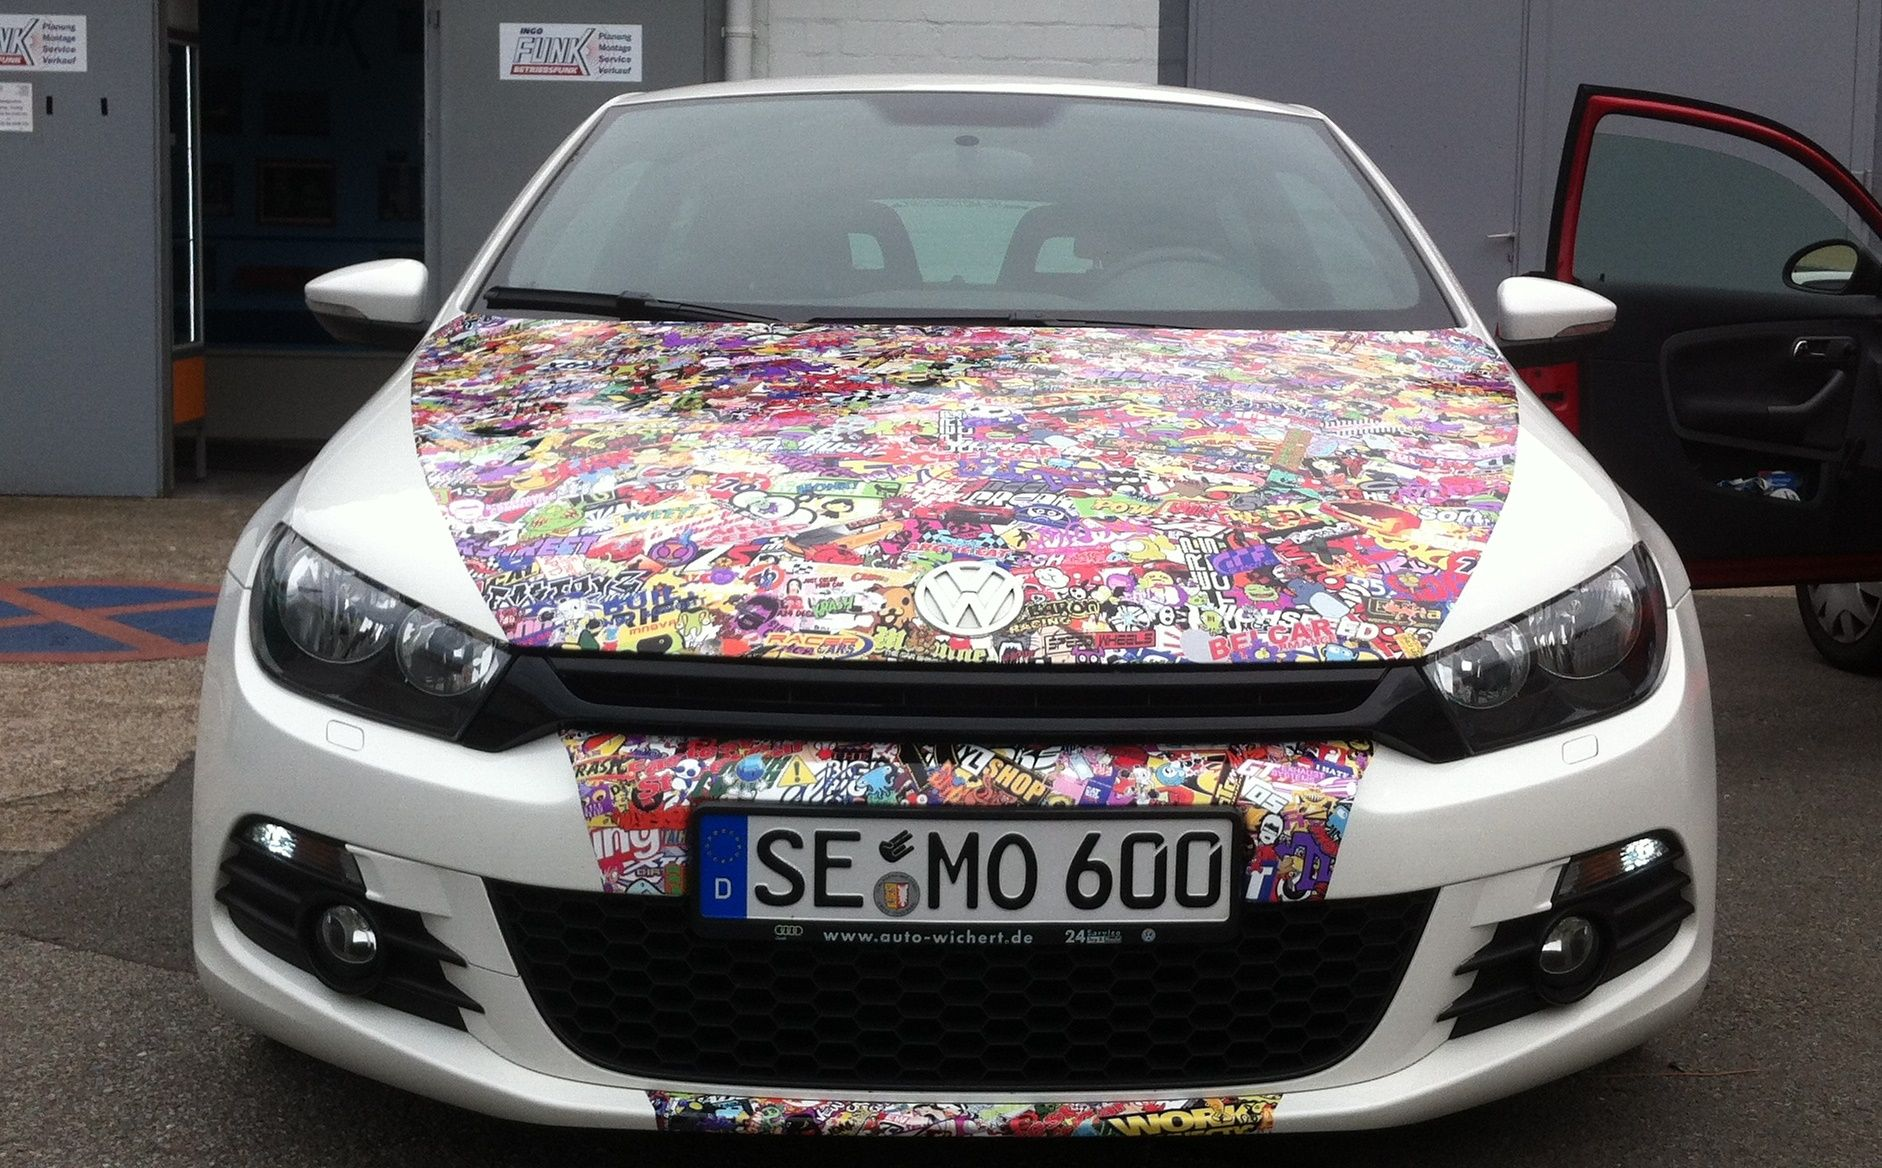 Audi r8 partial car wrapping sticker bomb stickerbomb by - Sticker Bomb Stickerbomb Design By Autoaufkleber